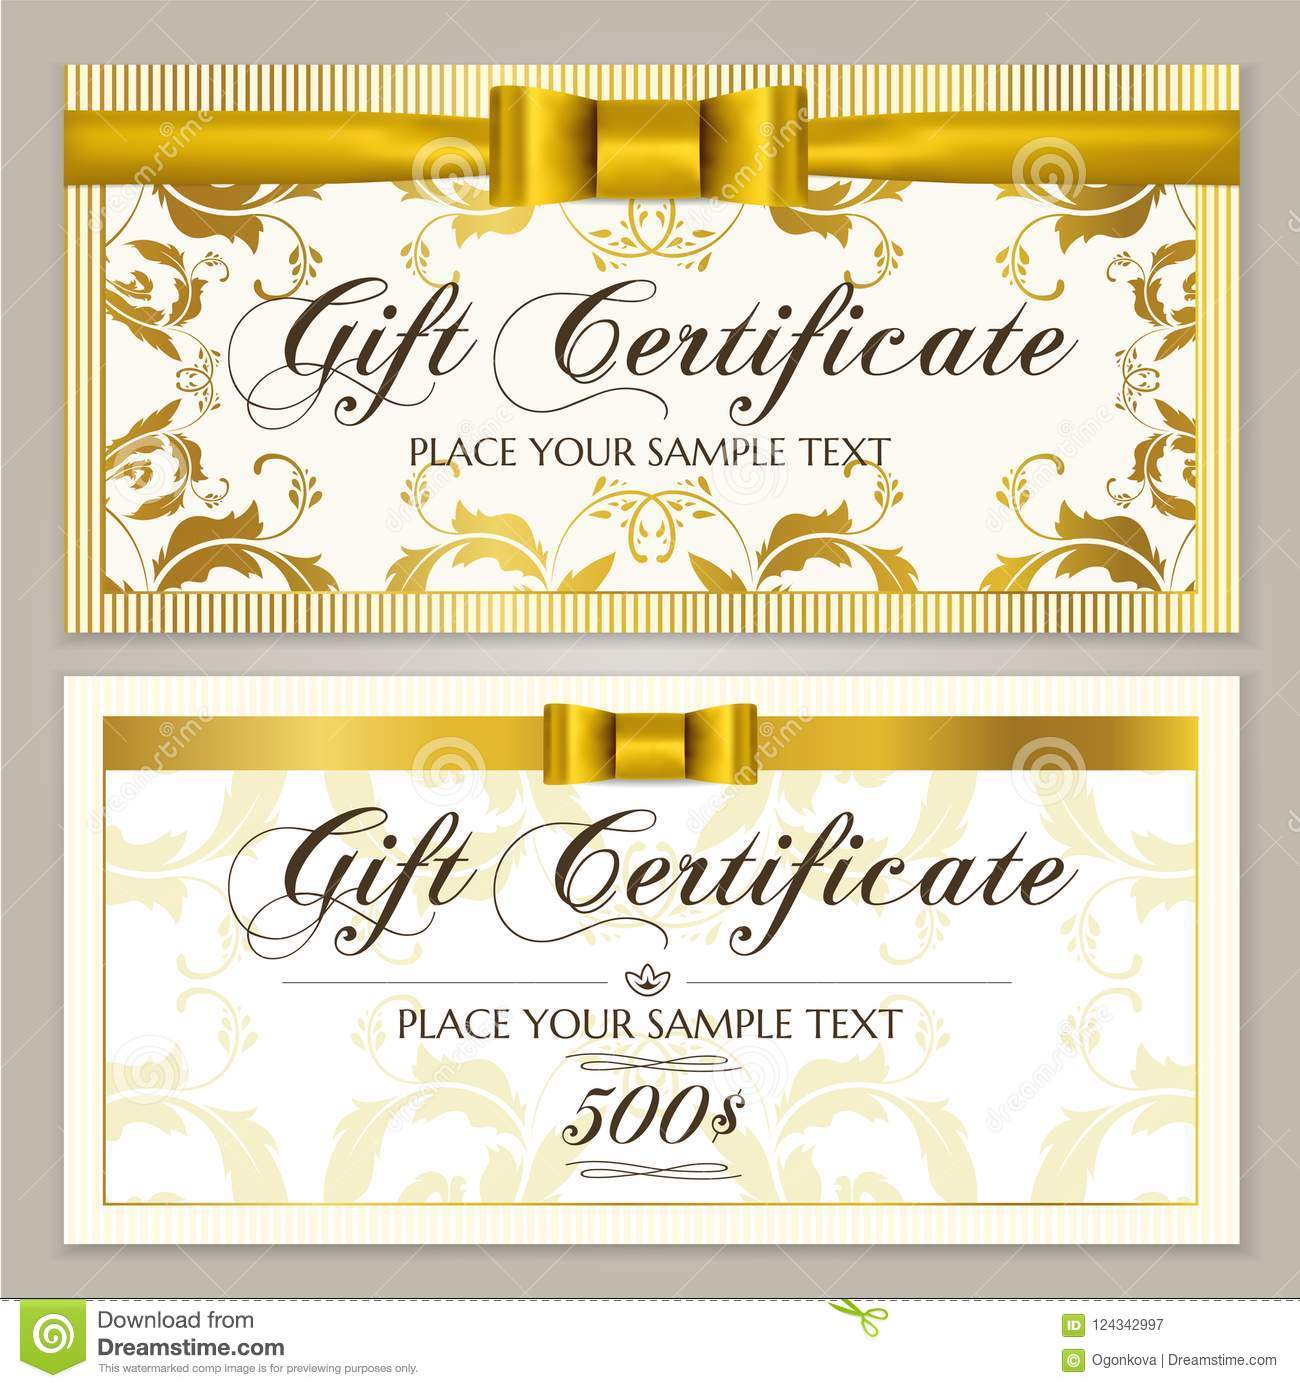 Gift Certificate Template Gift Voucher Layout, Coupon Template